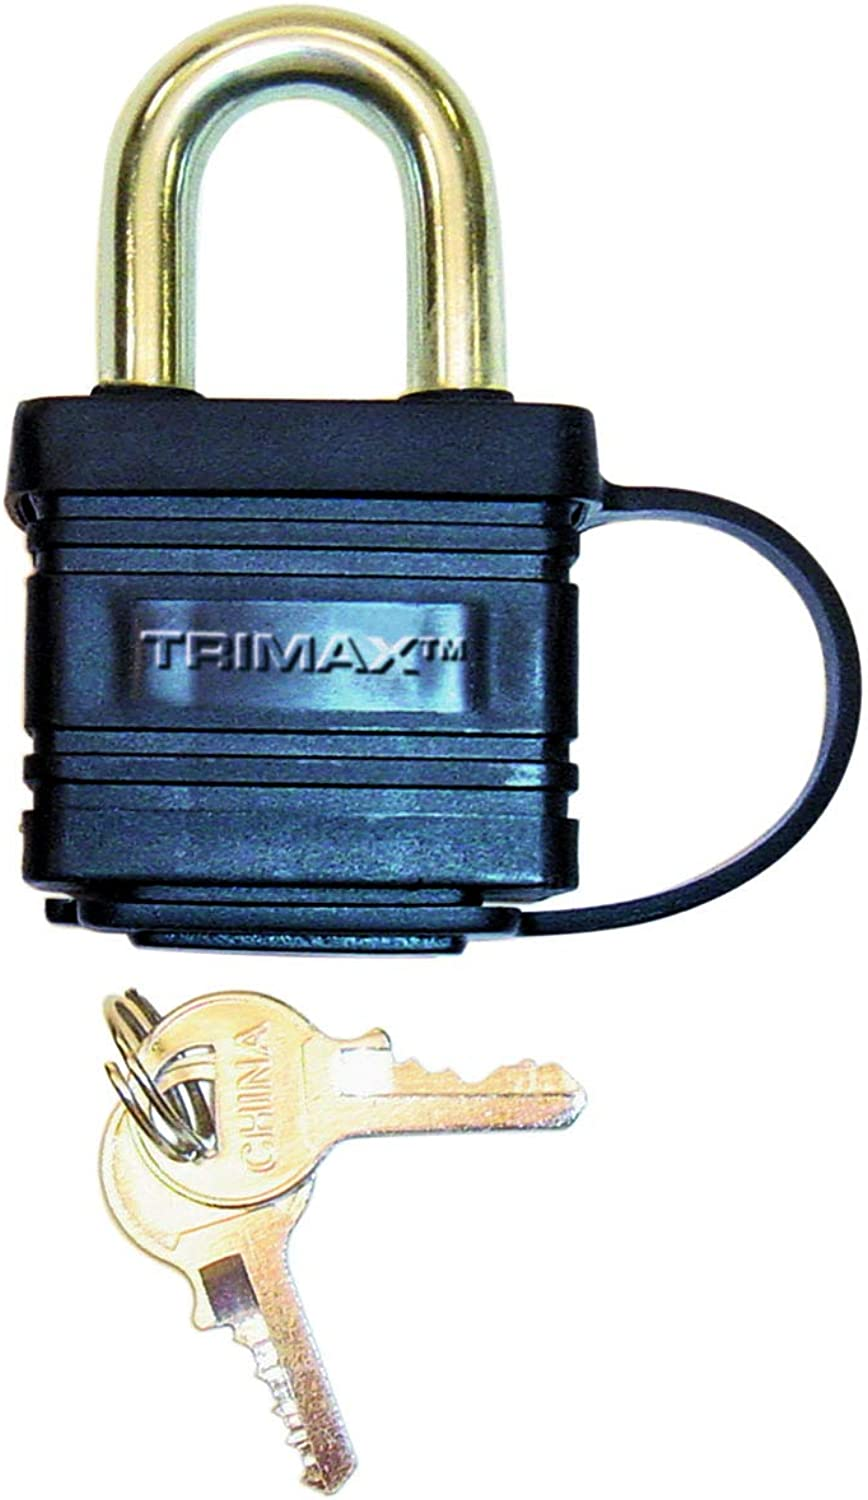 Trimax TPW1125 Weather Proof Laminated Solid Steel Body - Dual Locking 1-1 8  x 5 16  Shackle